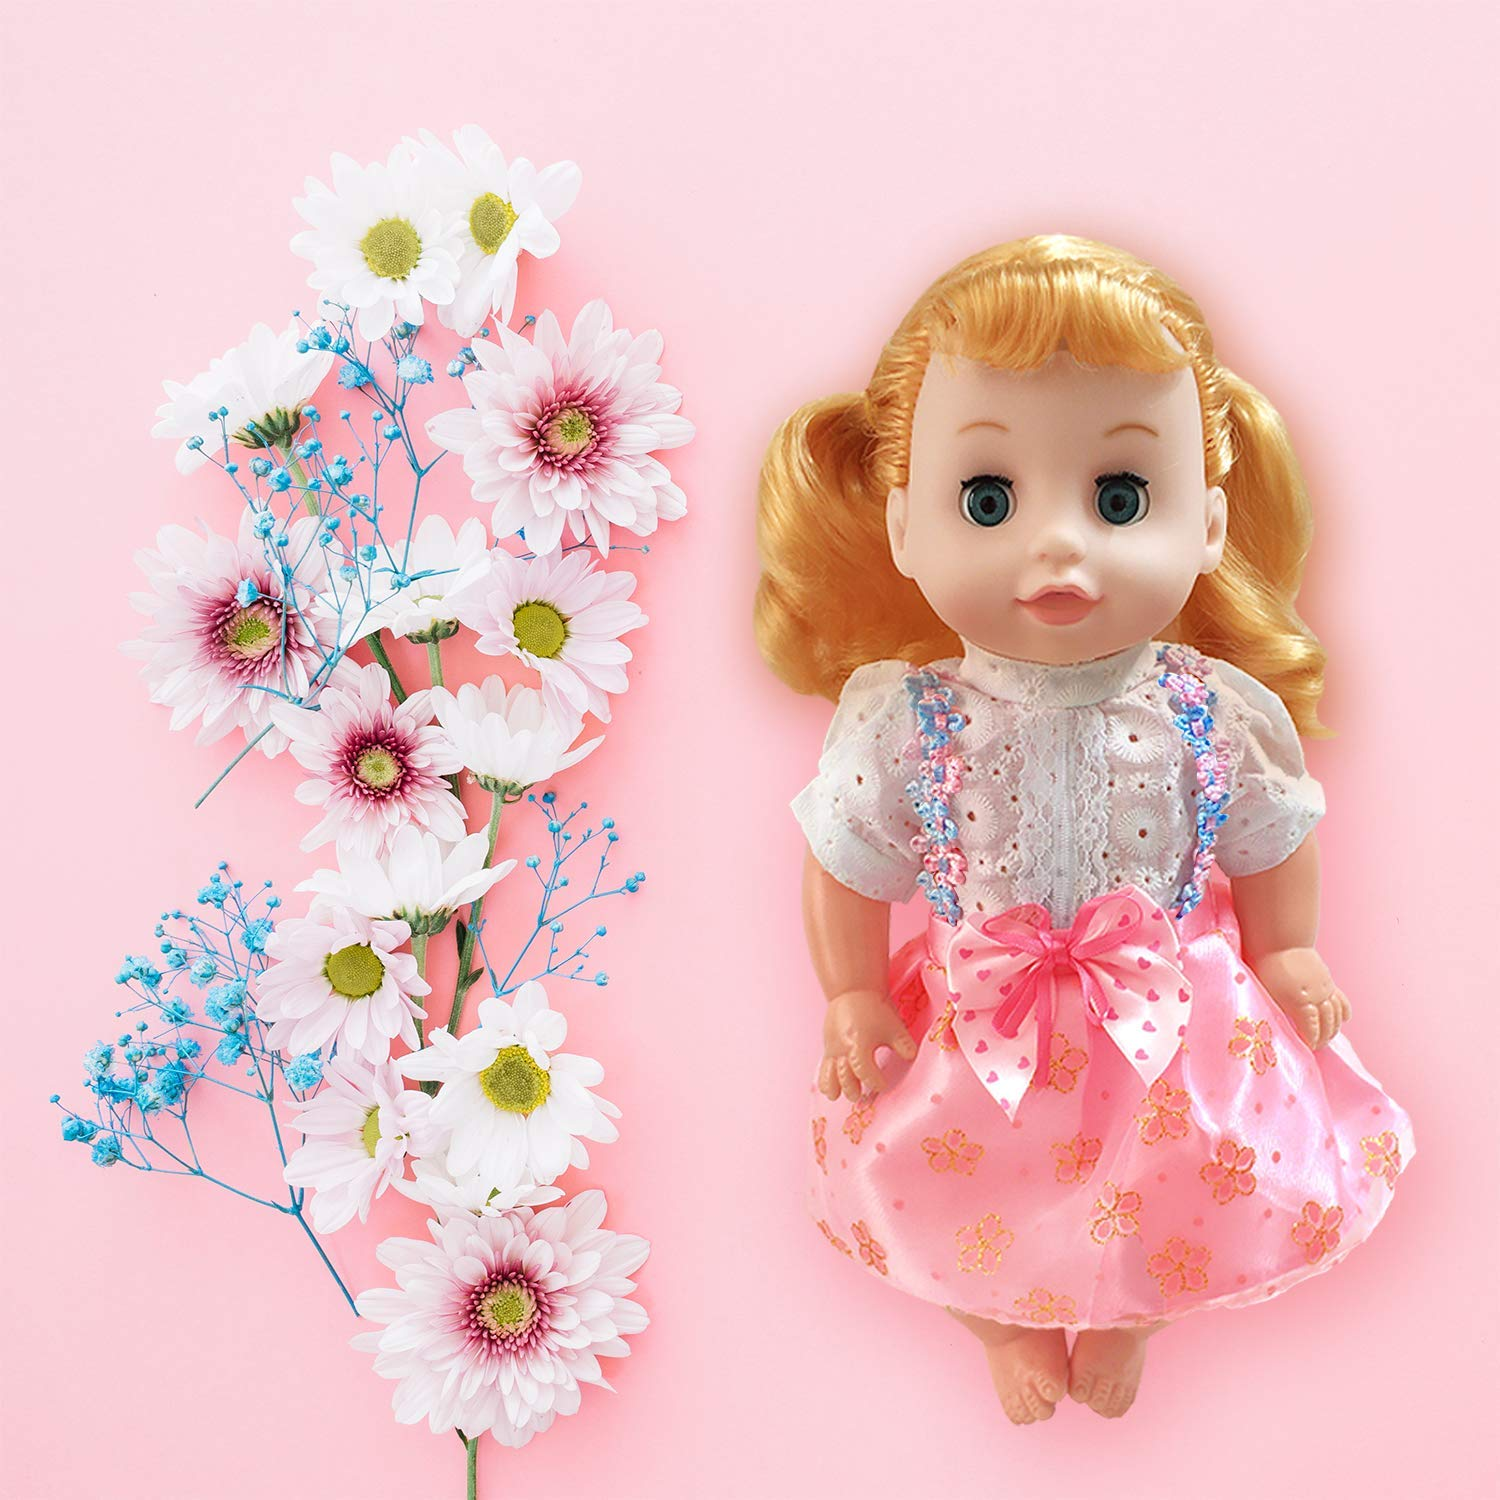 ARTST Doll Clothes,12 inch Baby Doll Clothes 6 Sets Include 5 Caps for 10 inch Dolls /11 inch Baby Dolls/ 12 inch Baby Dolls/14 inch American Girl WellieWishers Willa Doll